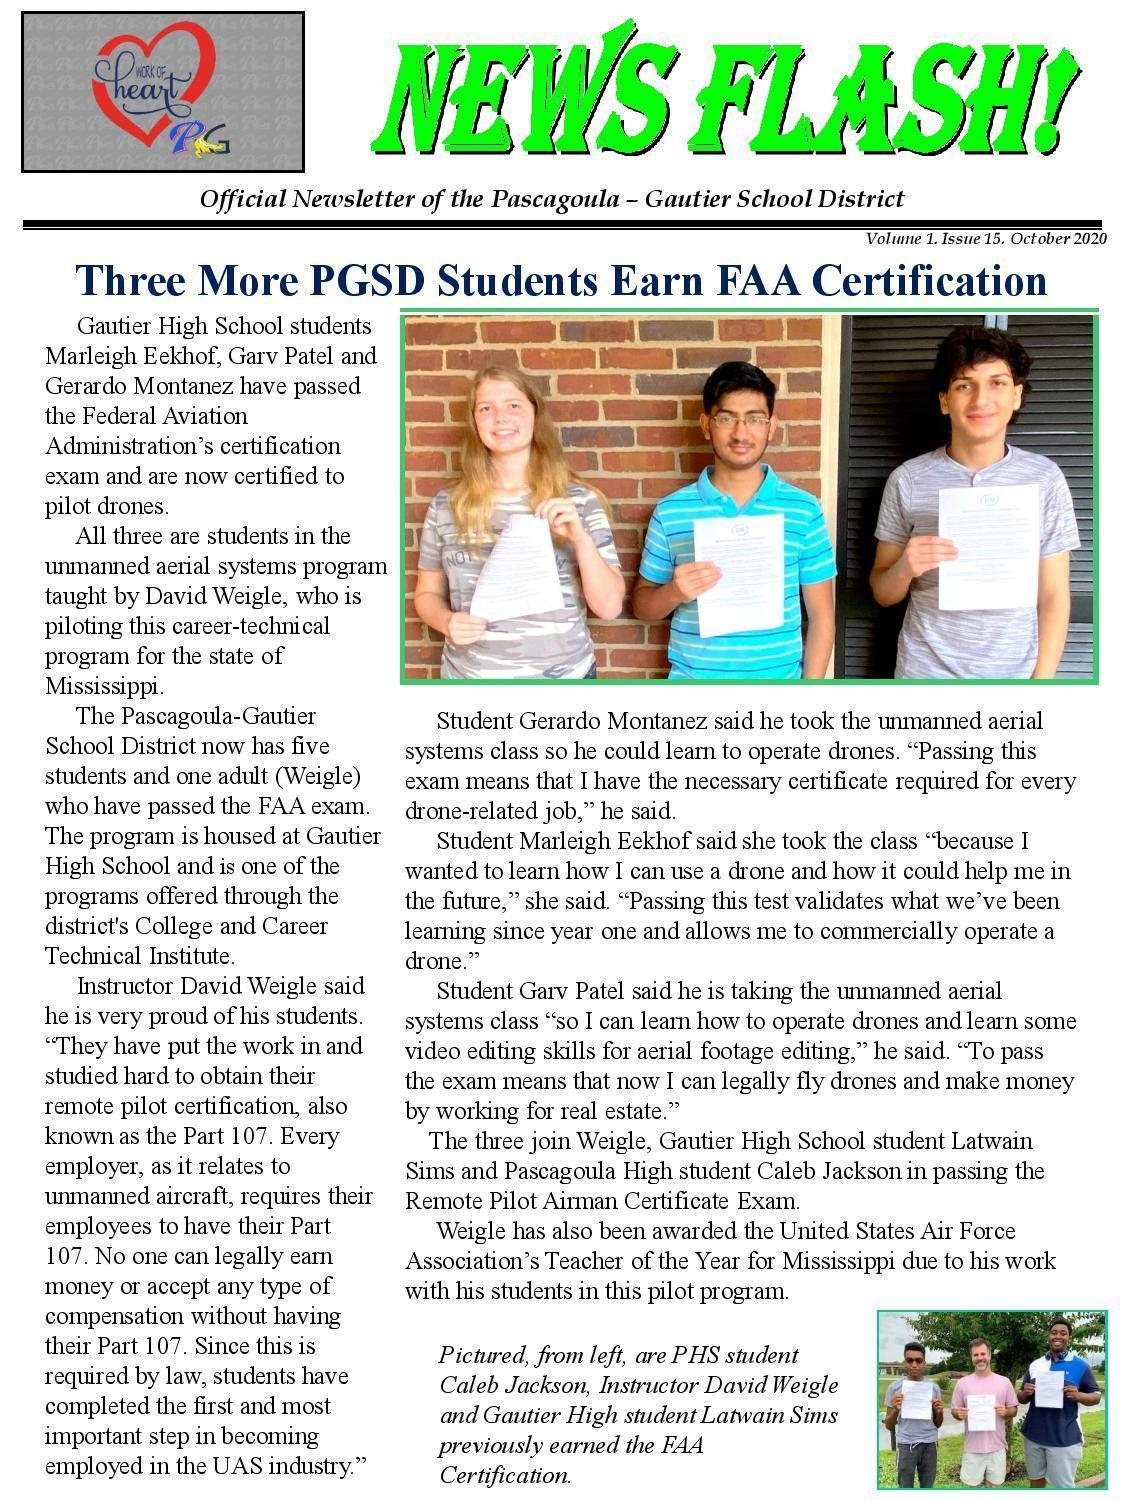 3 students holding certificates